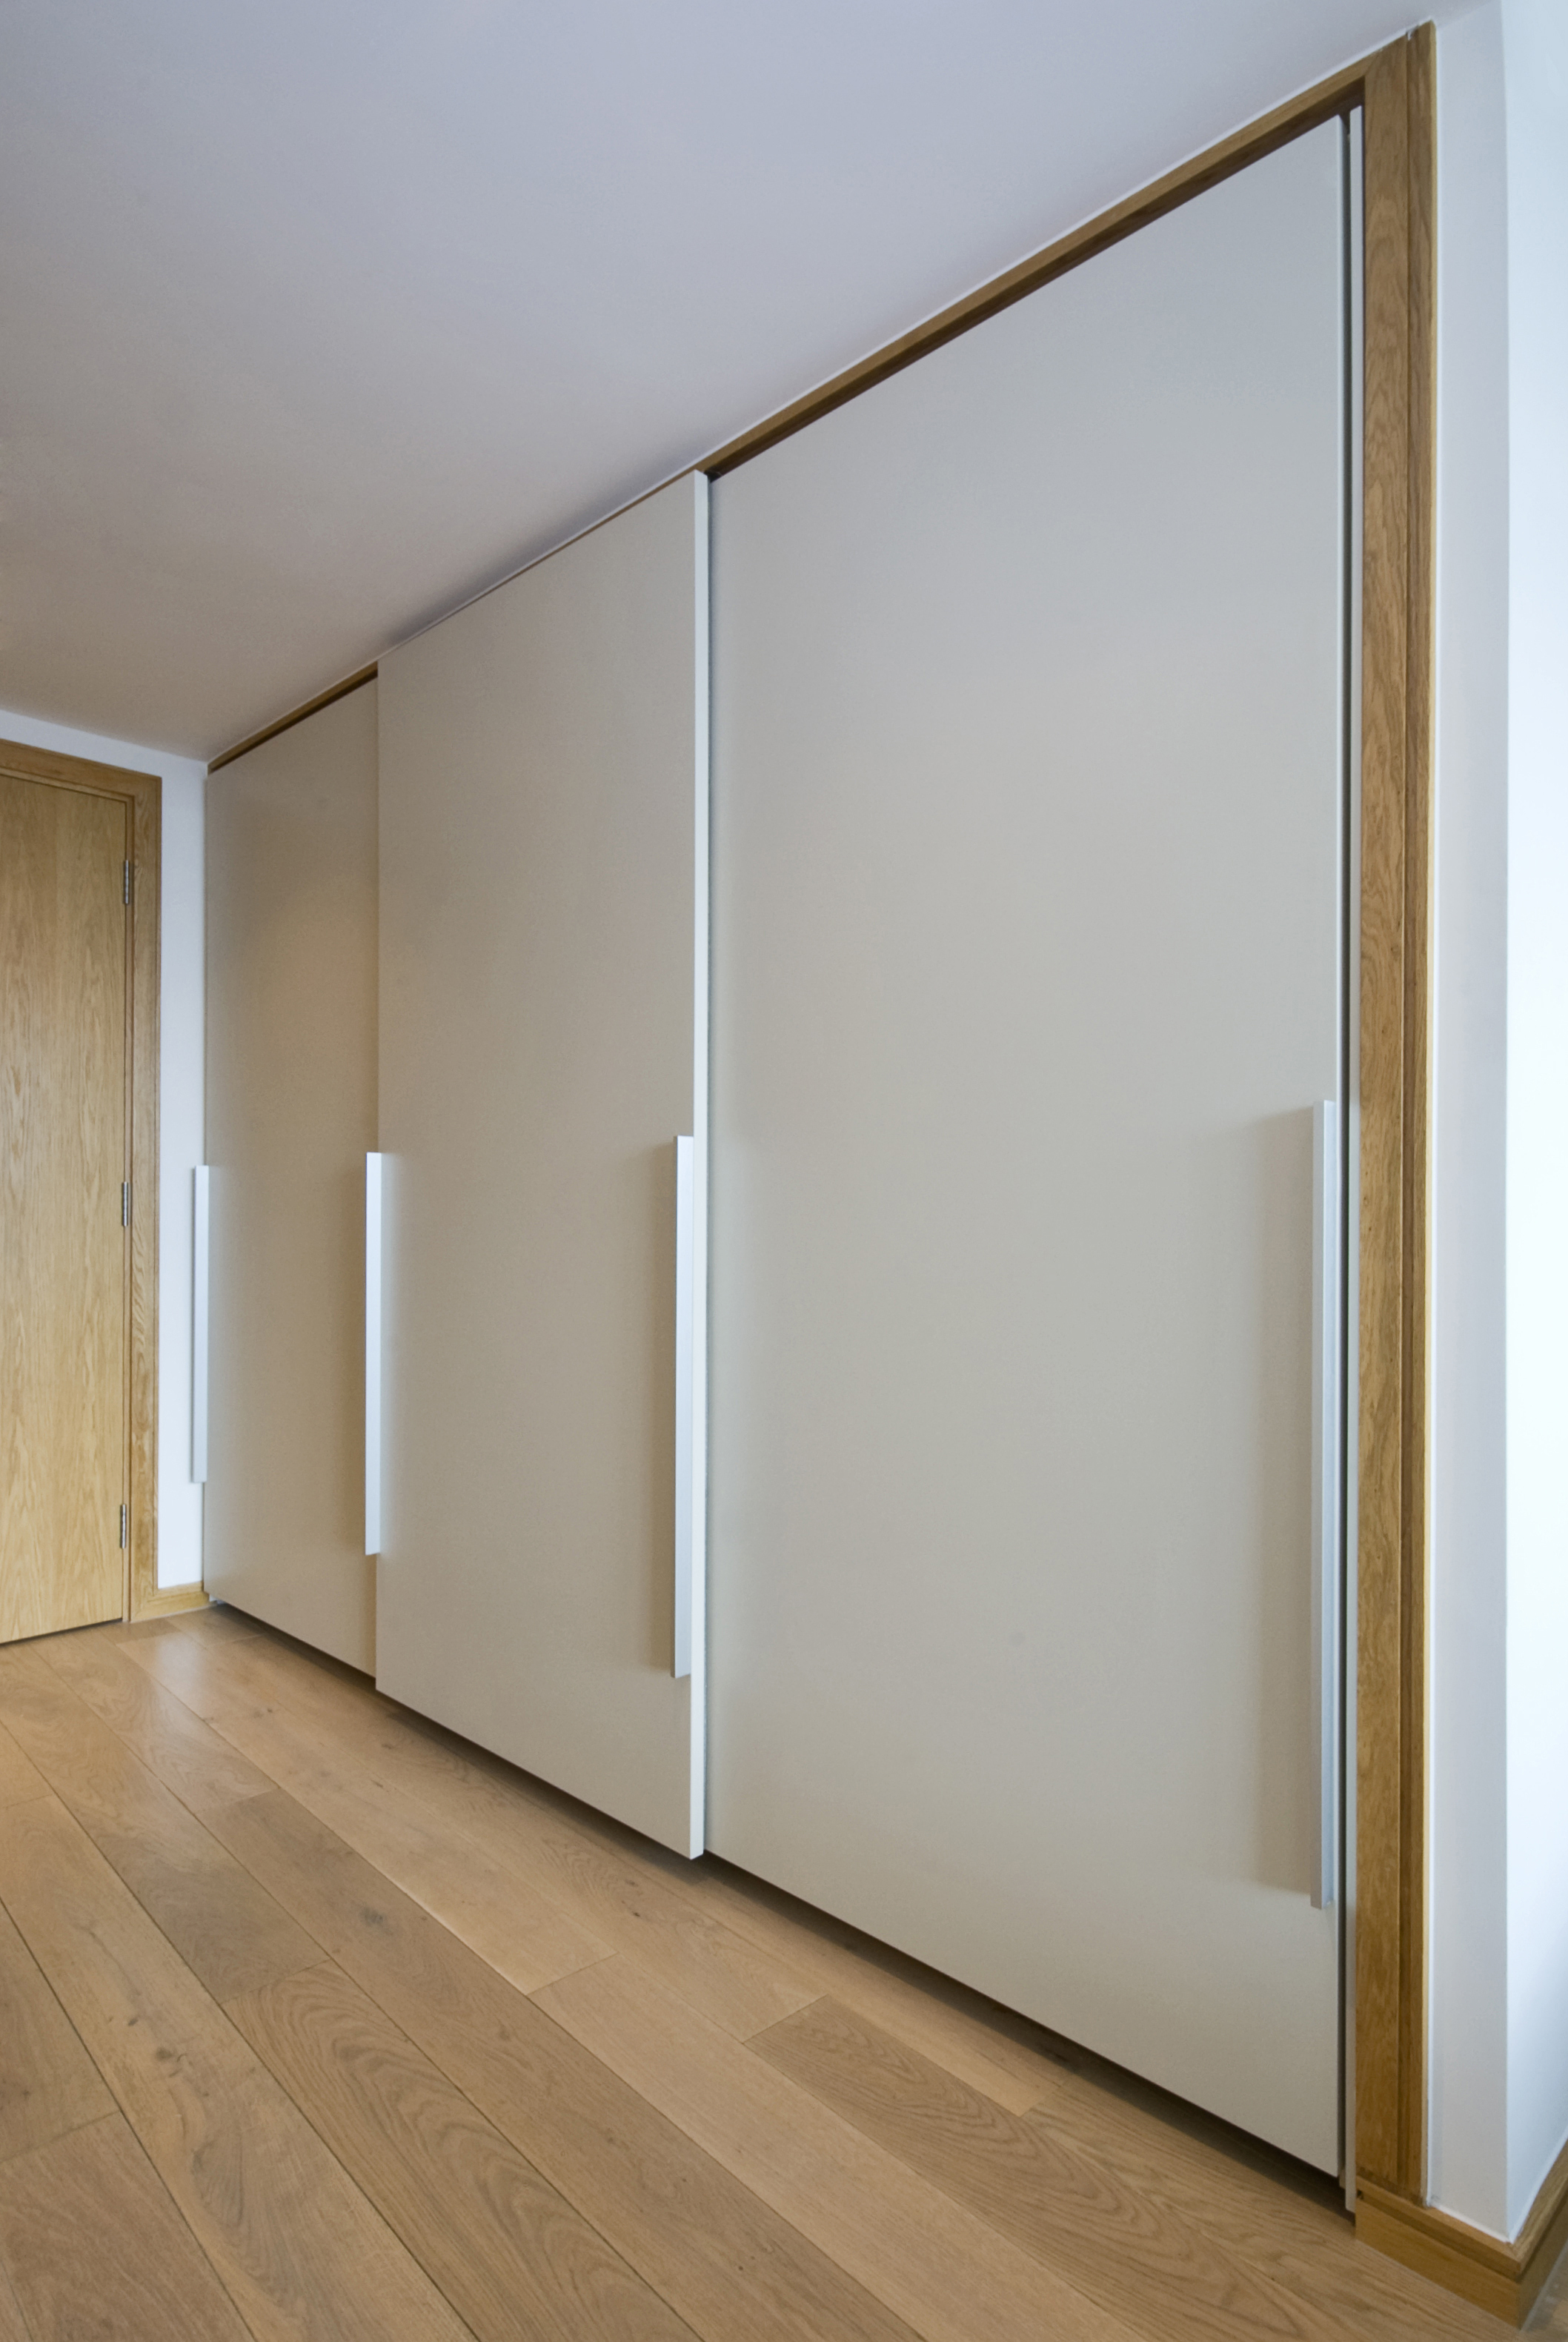 Framless fitted sliding wardrobes with matt finish painted lacquered panels